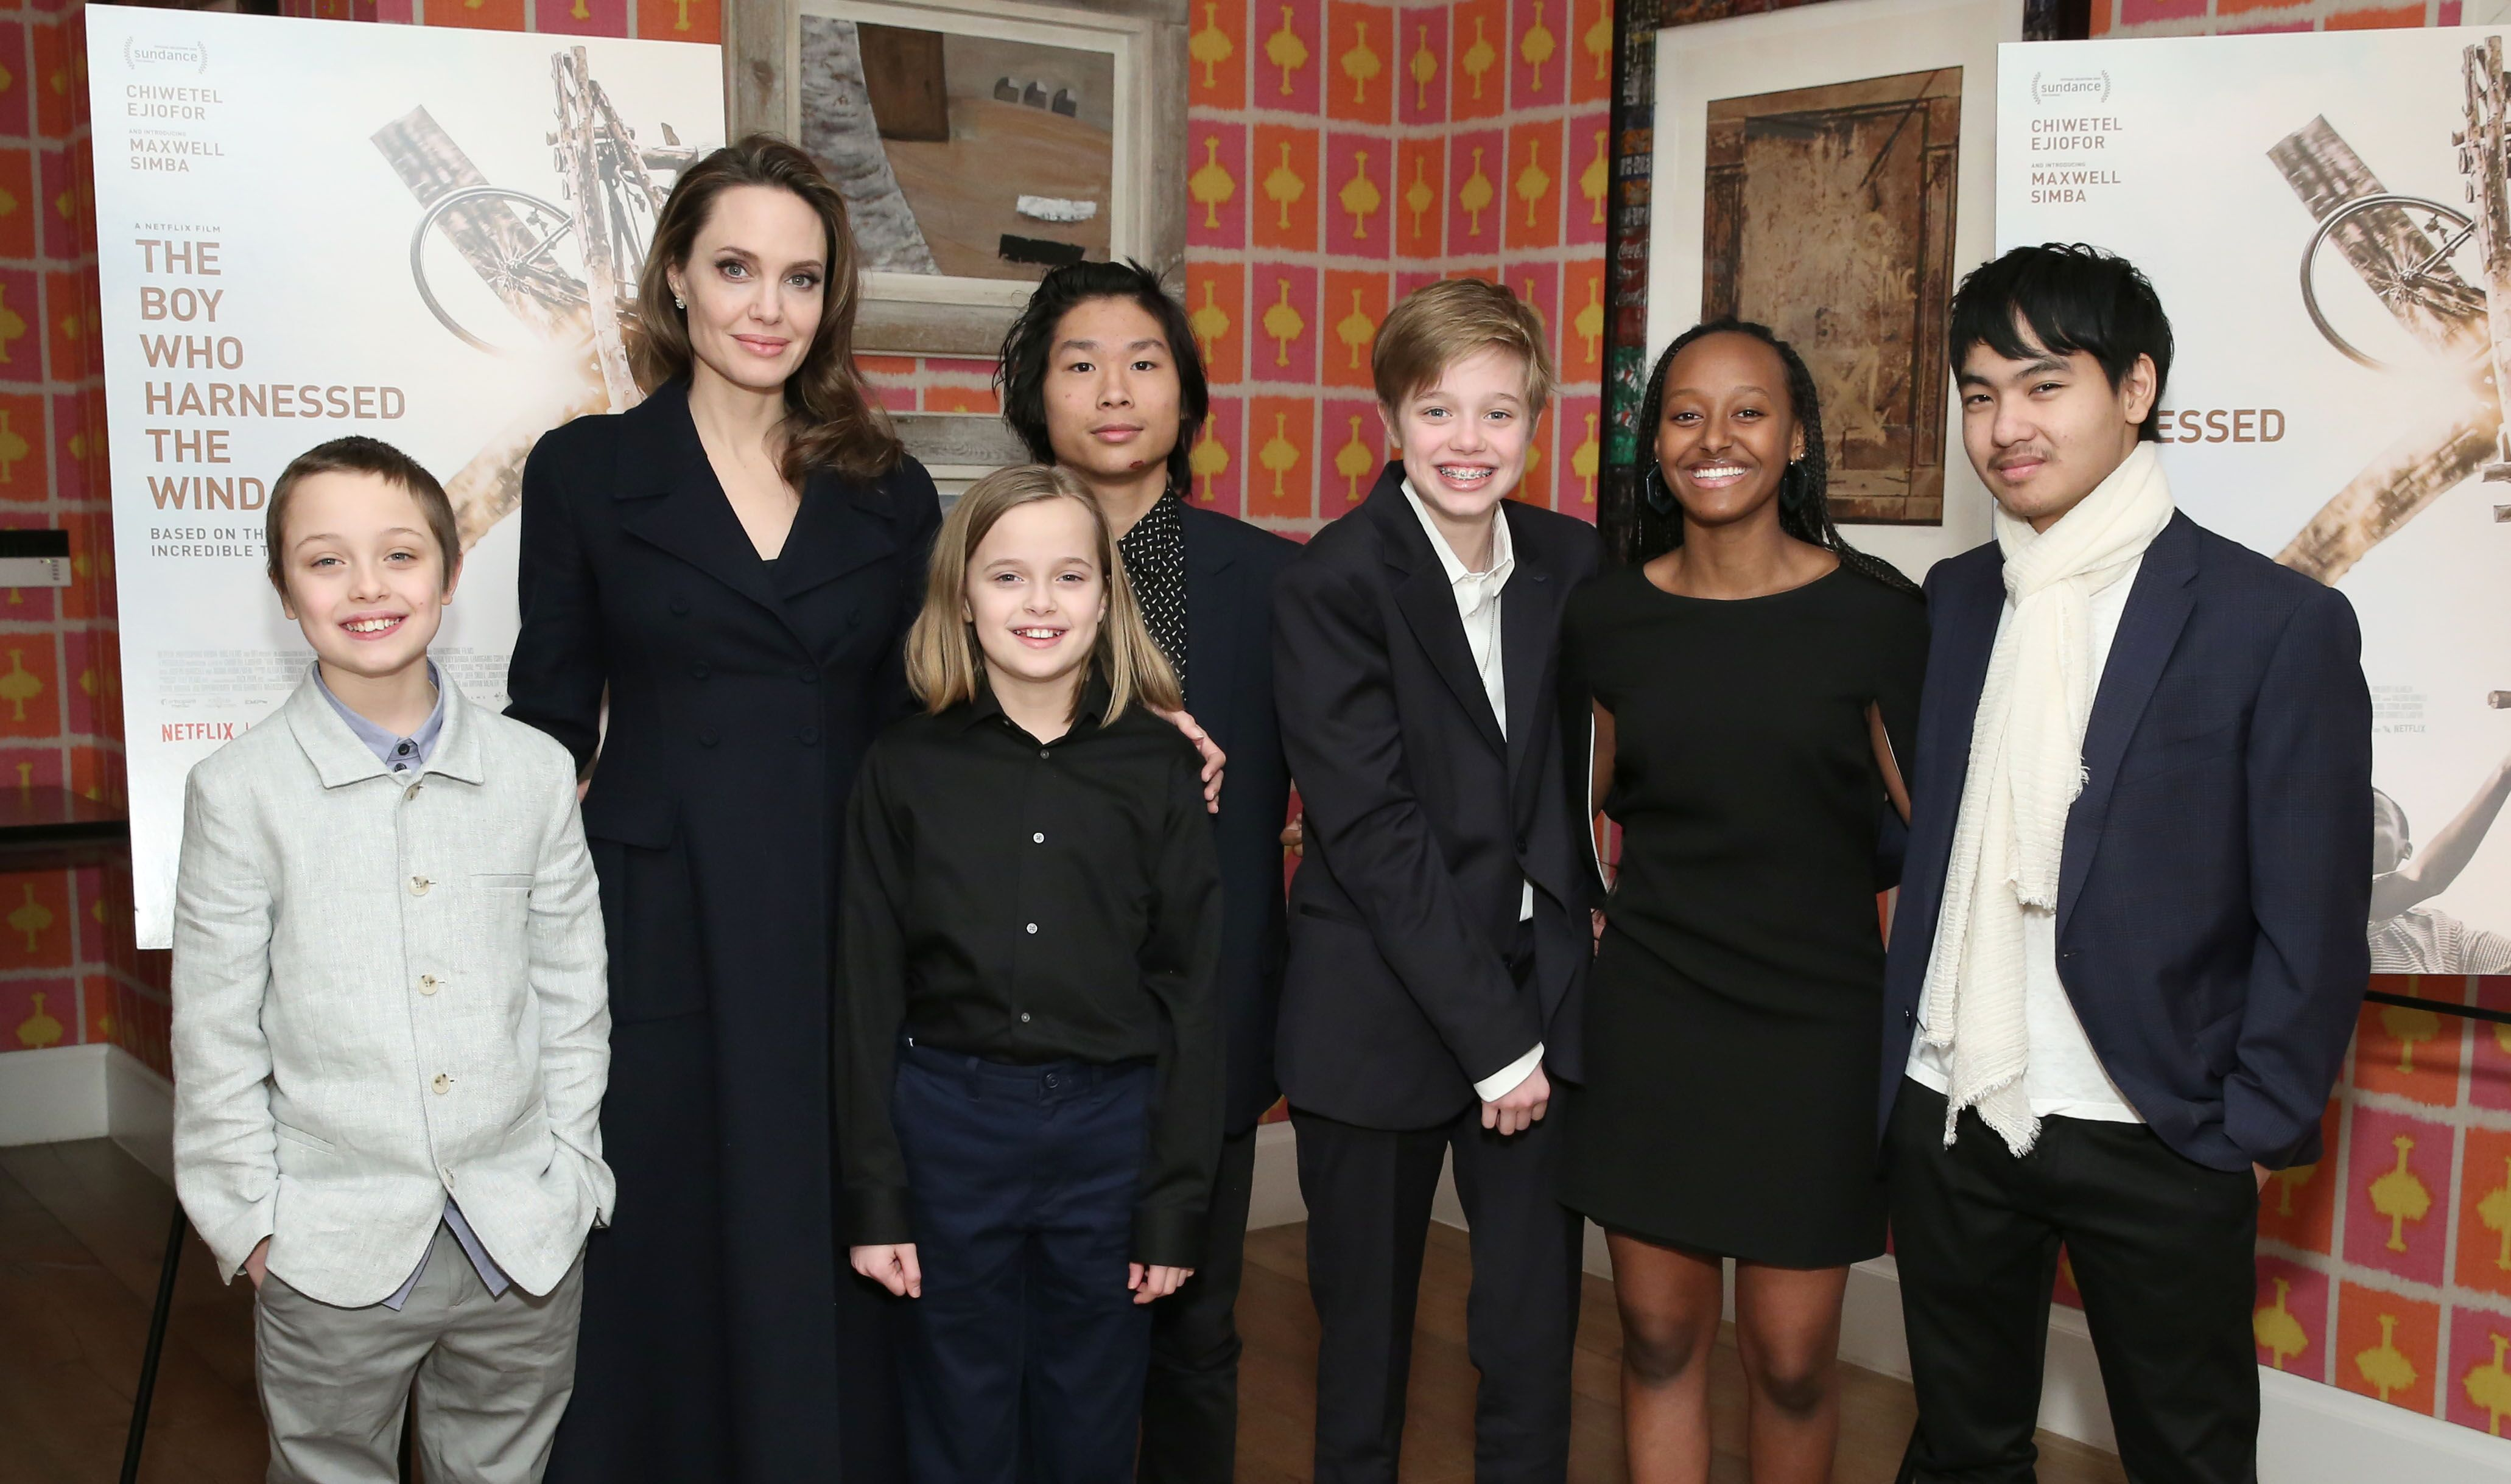 """Angelina Jolie with children Knox, Vivienne, Pax, Shiloh, Zahara and Maddox Jolie-Pitt attend """"The Boy Who Harnessed The Wind"""" screening in  2019 in New York 